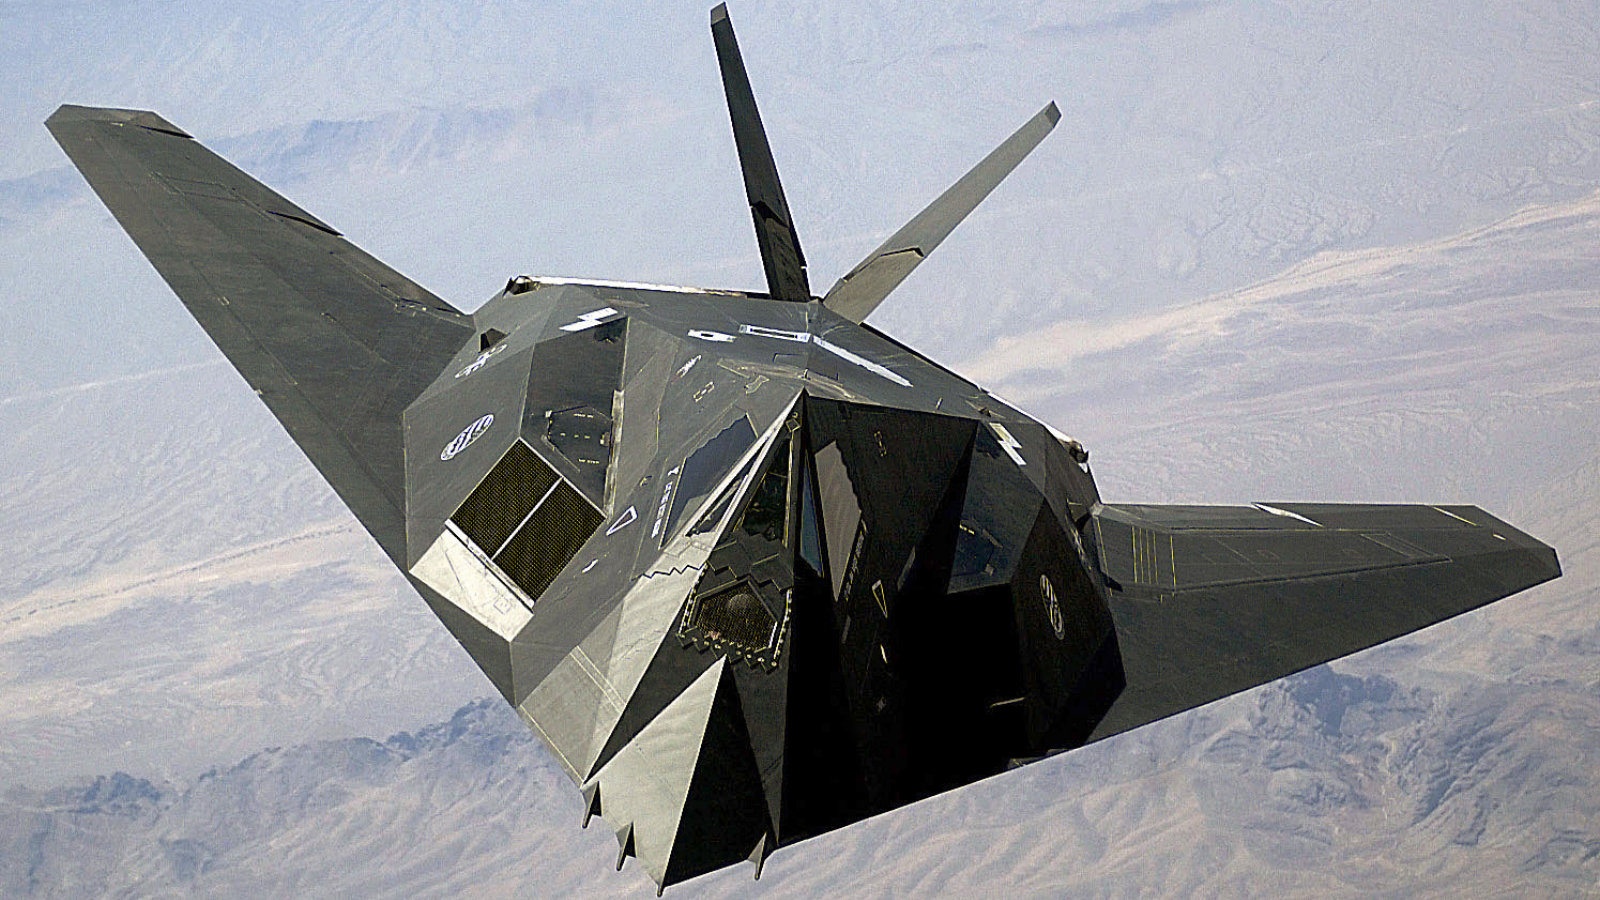 Click here to read How Lockheed's Skunk Works Got into the Stealth Fighter Business